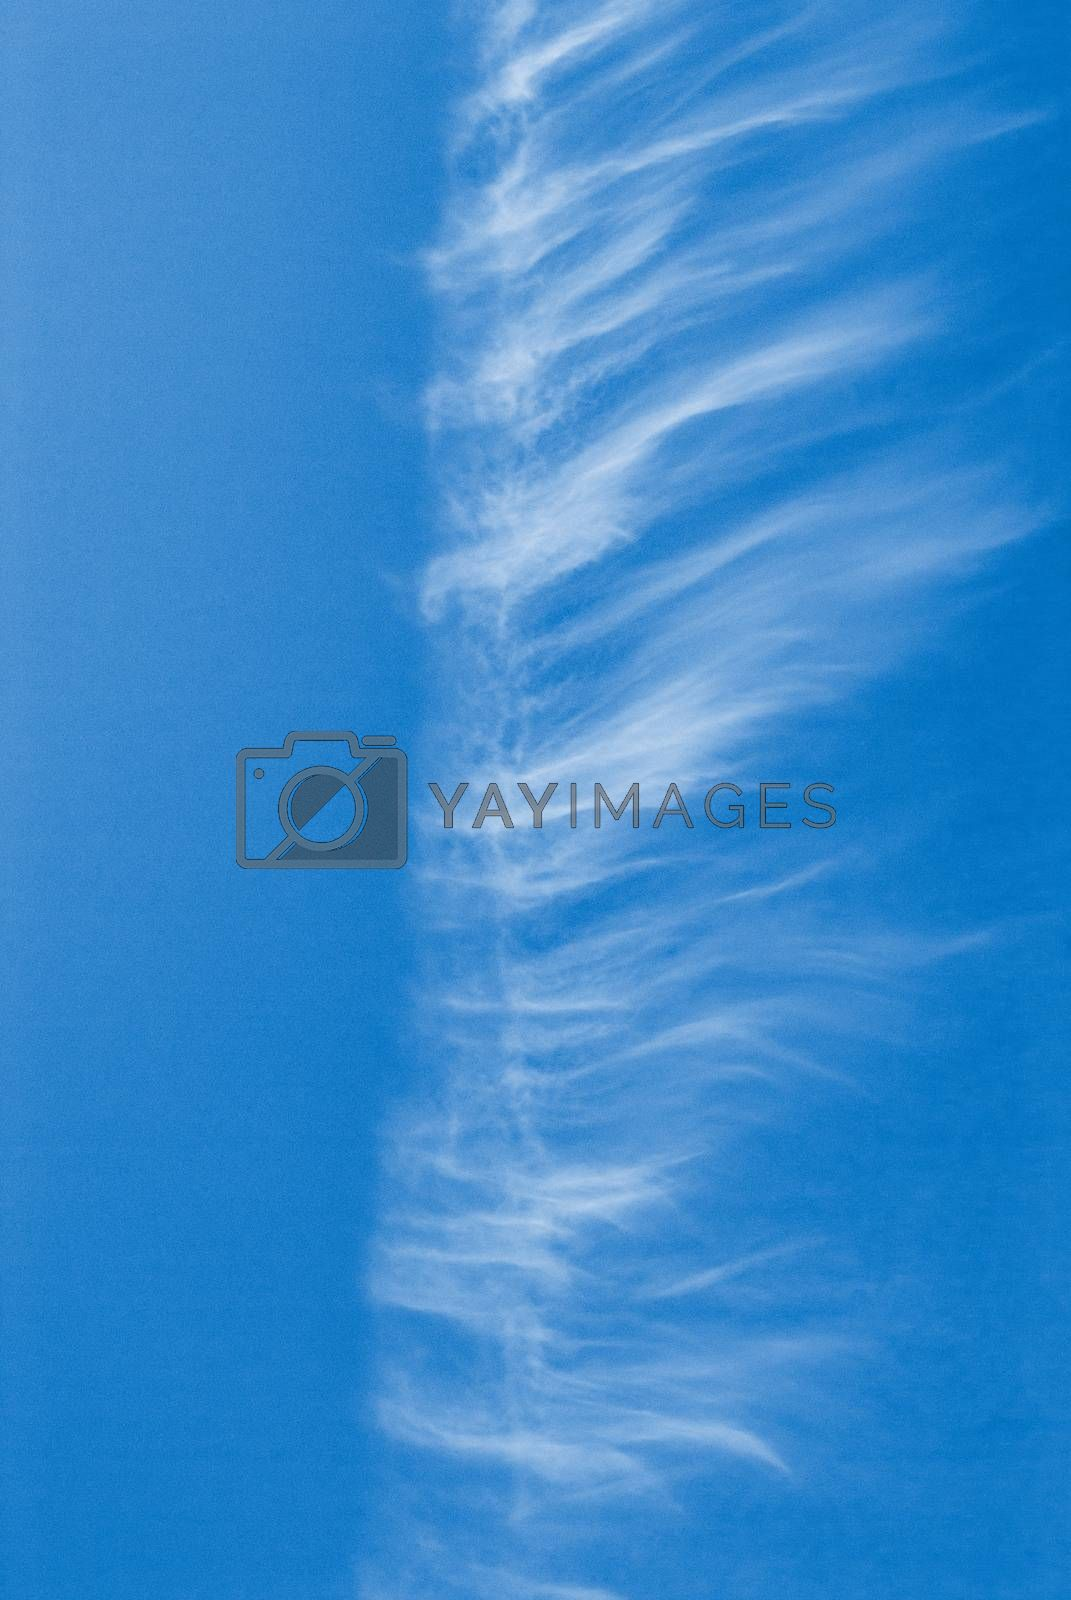 Beautiful clouds on a blue sky day in Sunny weather